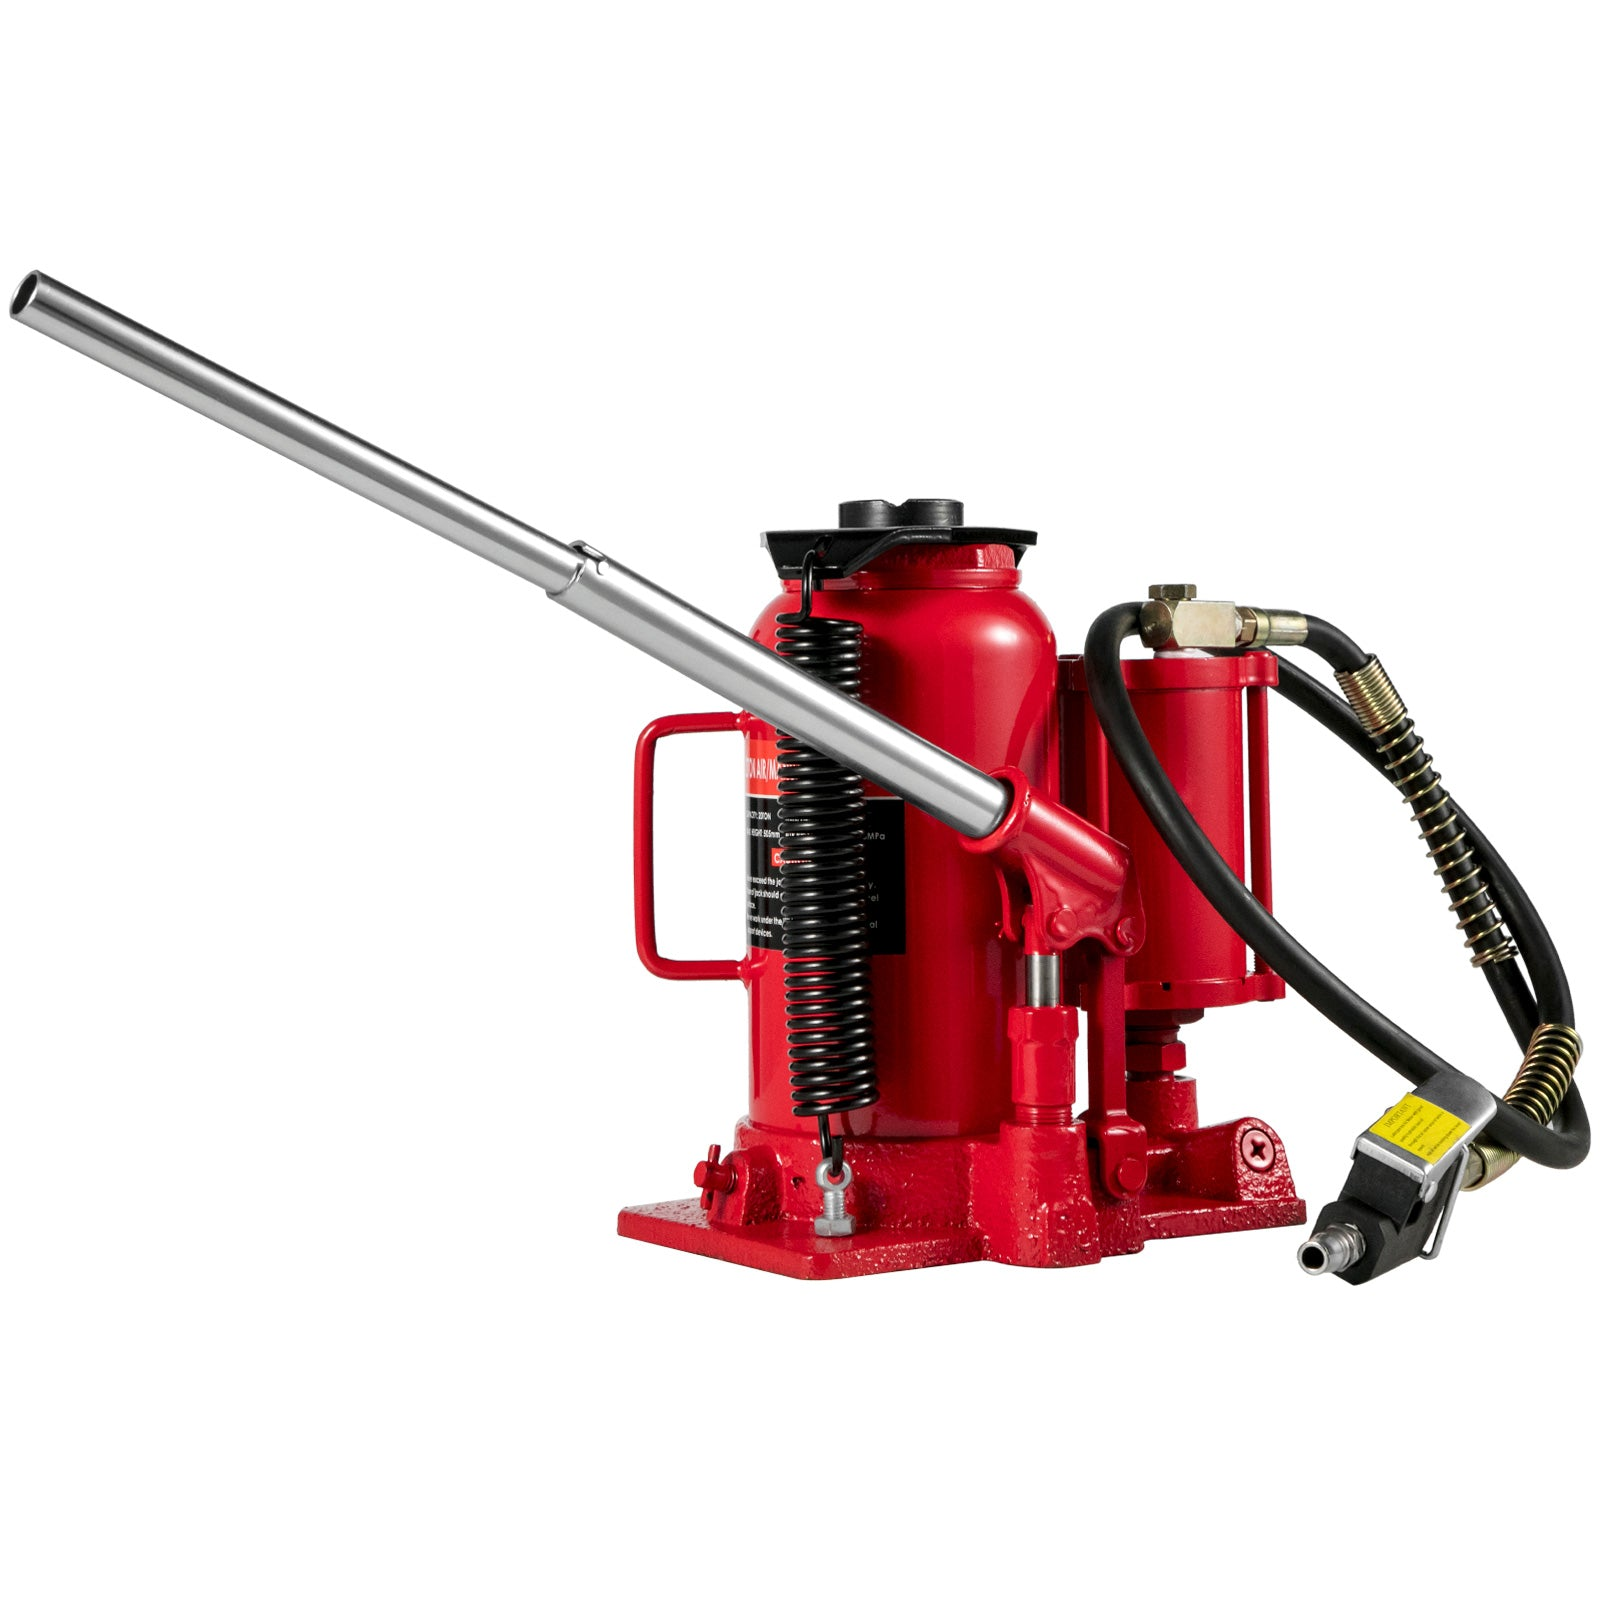 20 Ton Hydraulic Air Bottle Jack Pneumatic Lifting Jack 20-180psi Heavy Duty